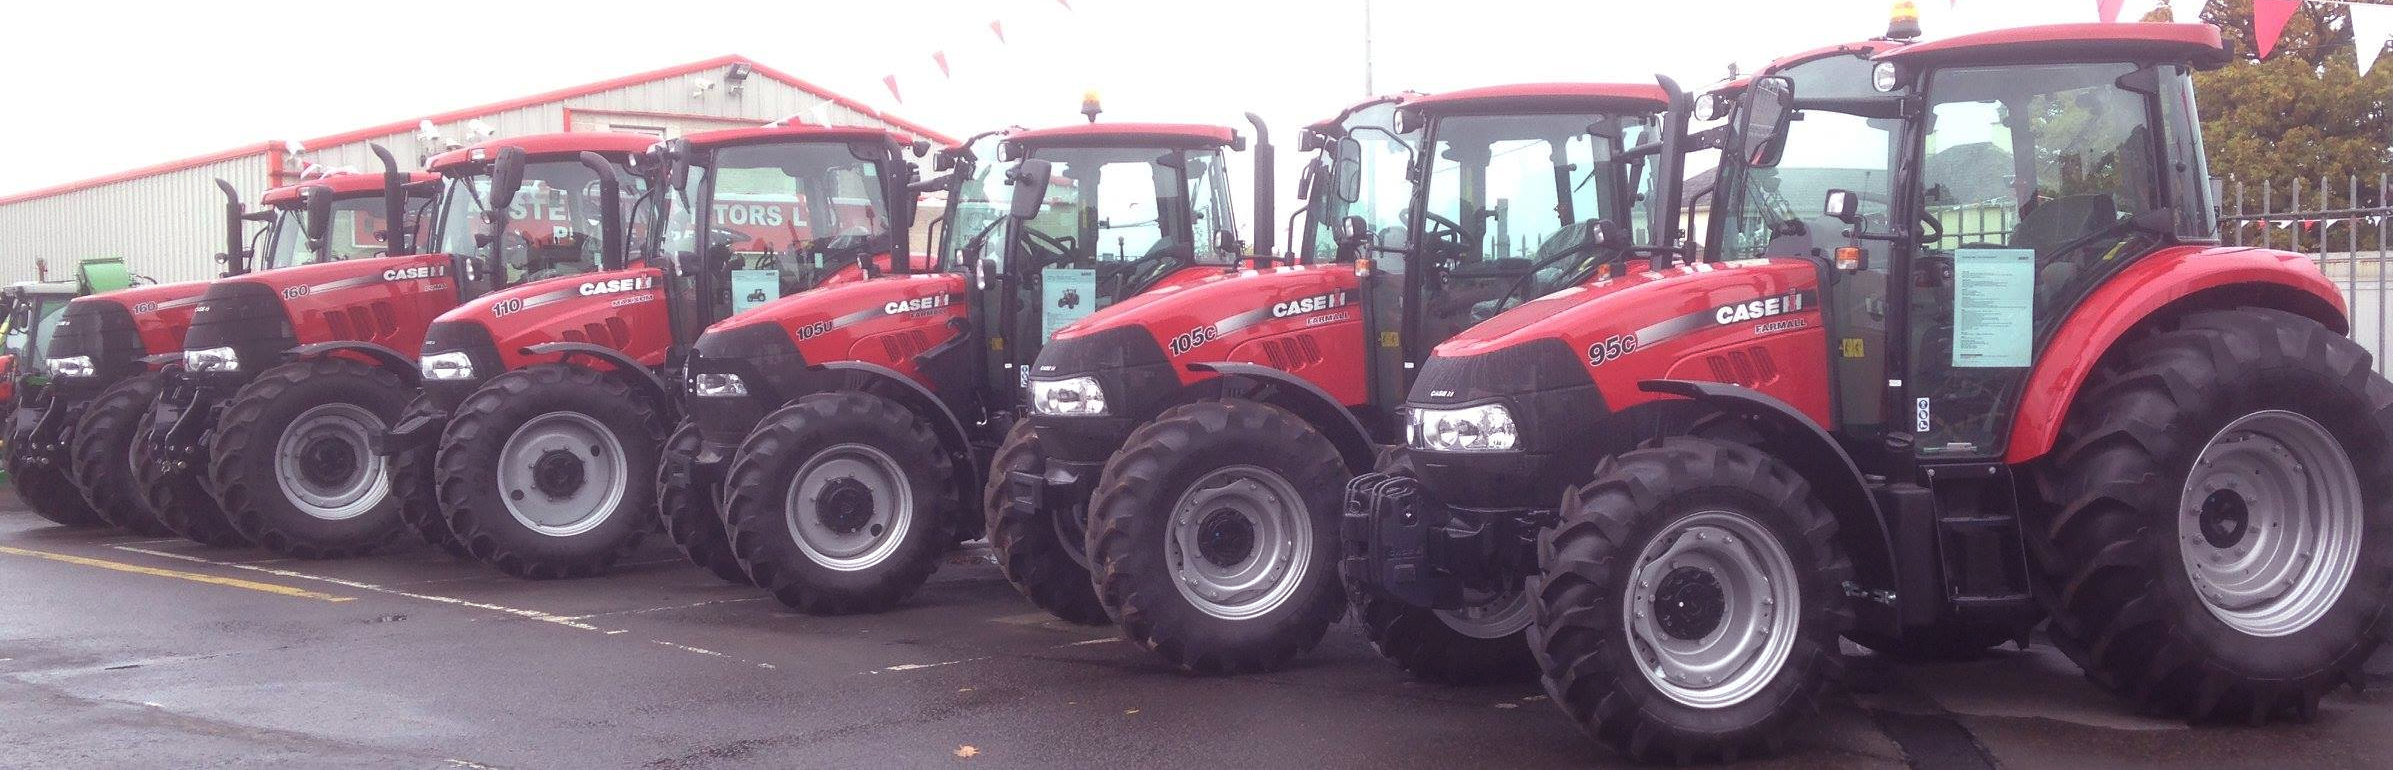 JH-Fitzpatrick-Tractors-Loaders-Dealer